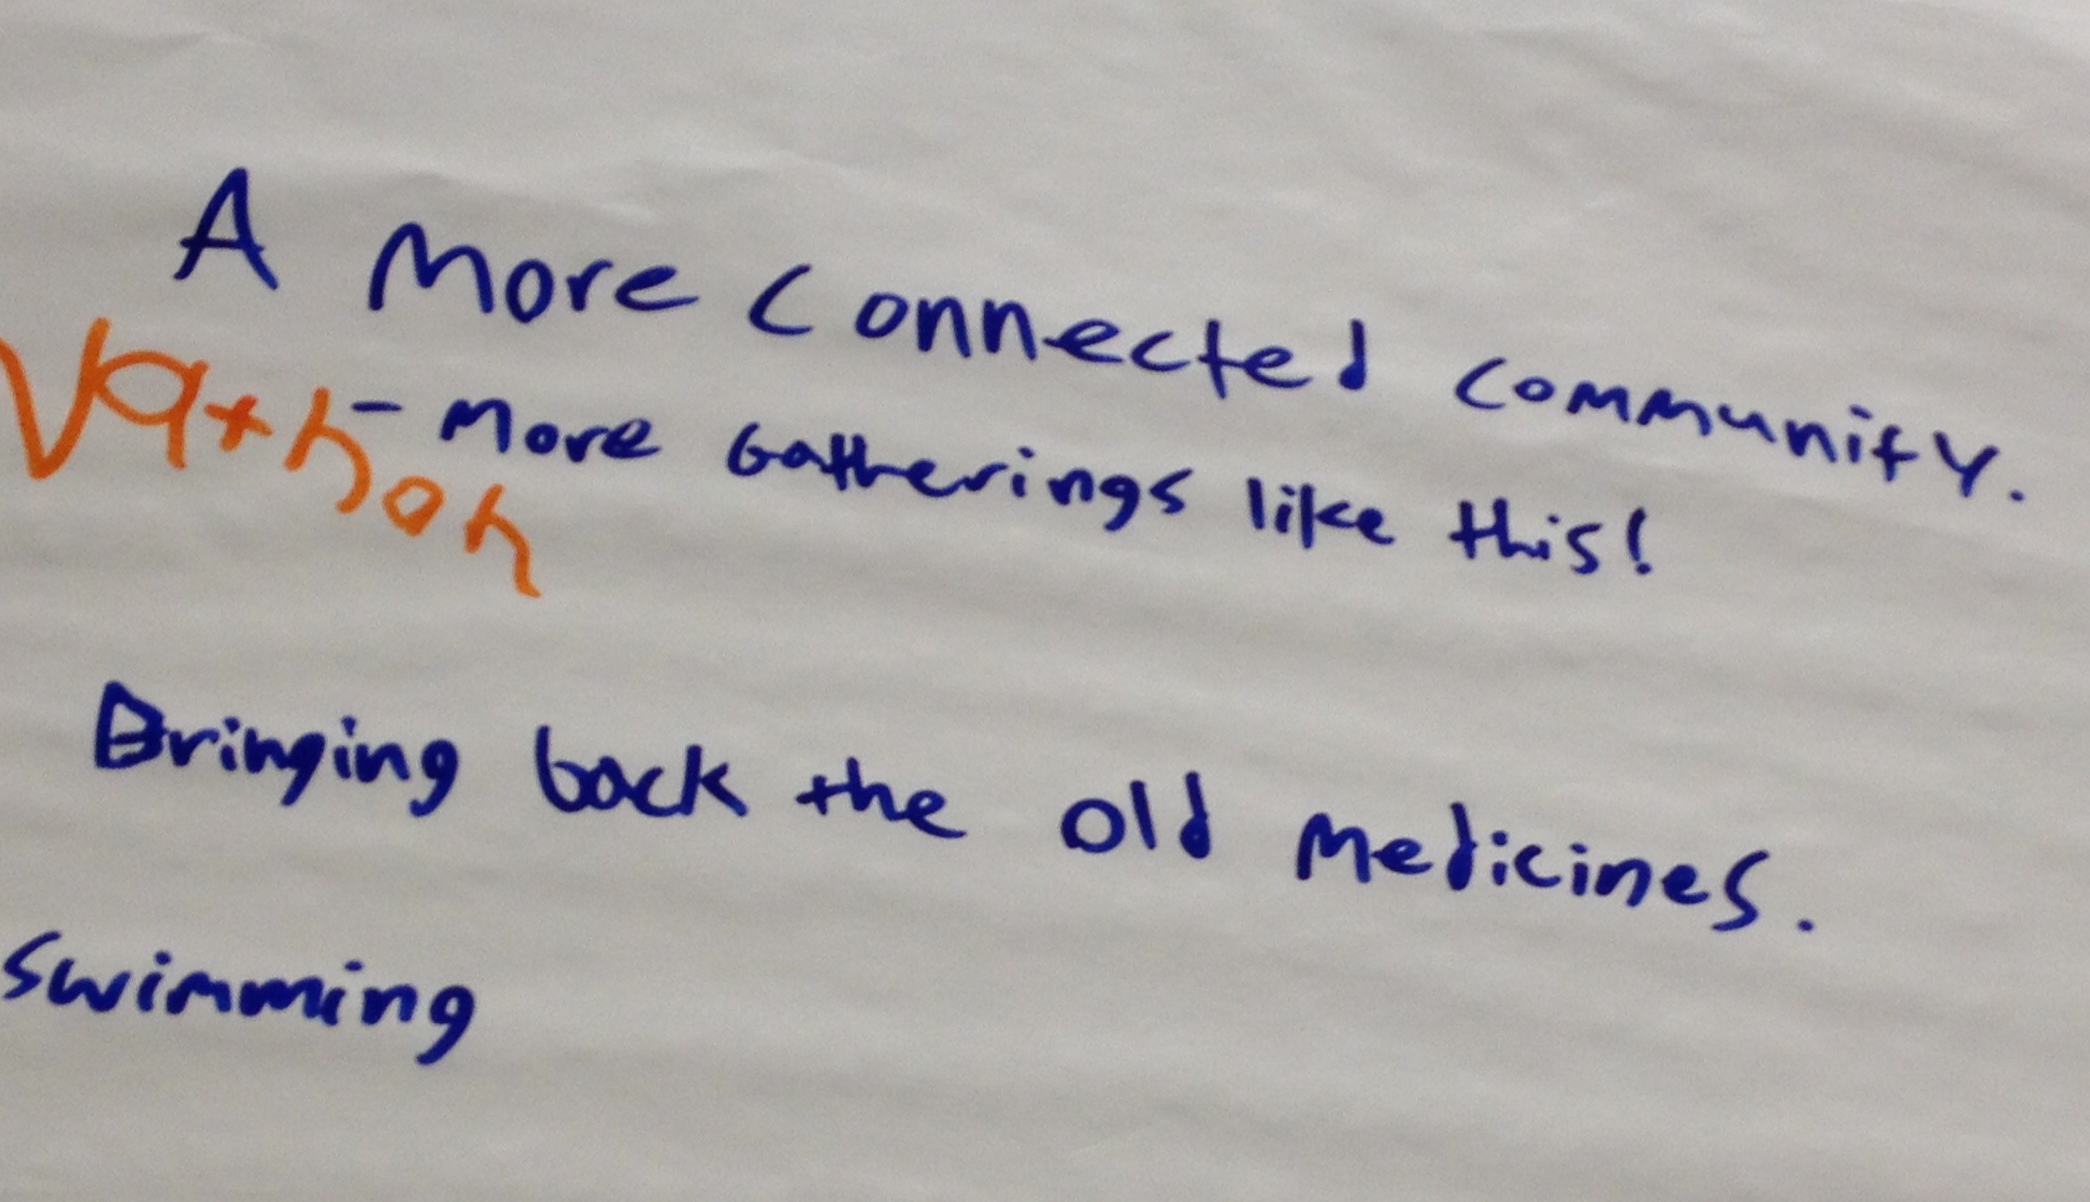 Caption: Notes from the Youth Visioning Health event.